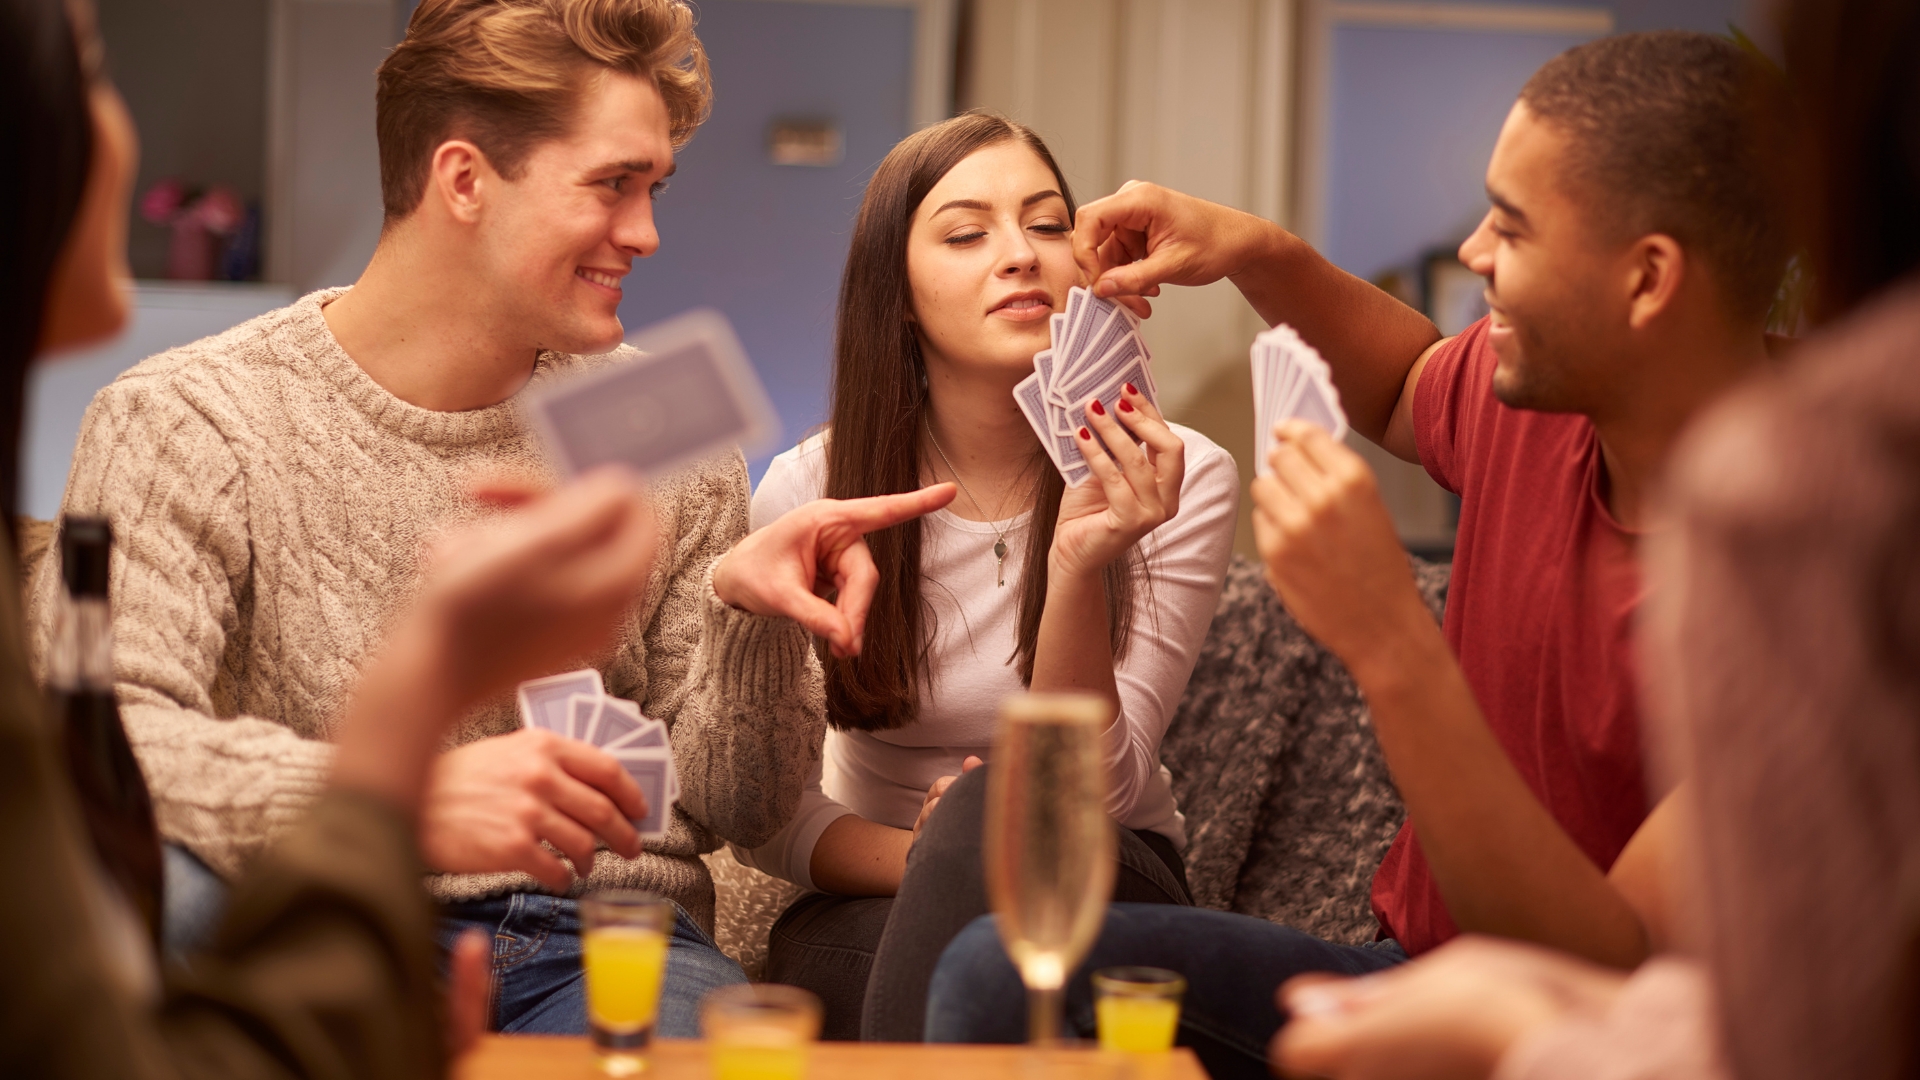 students laughing playing cards at table